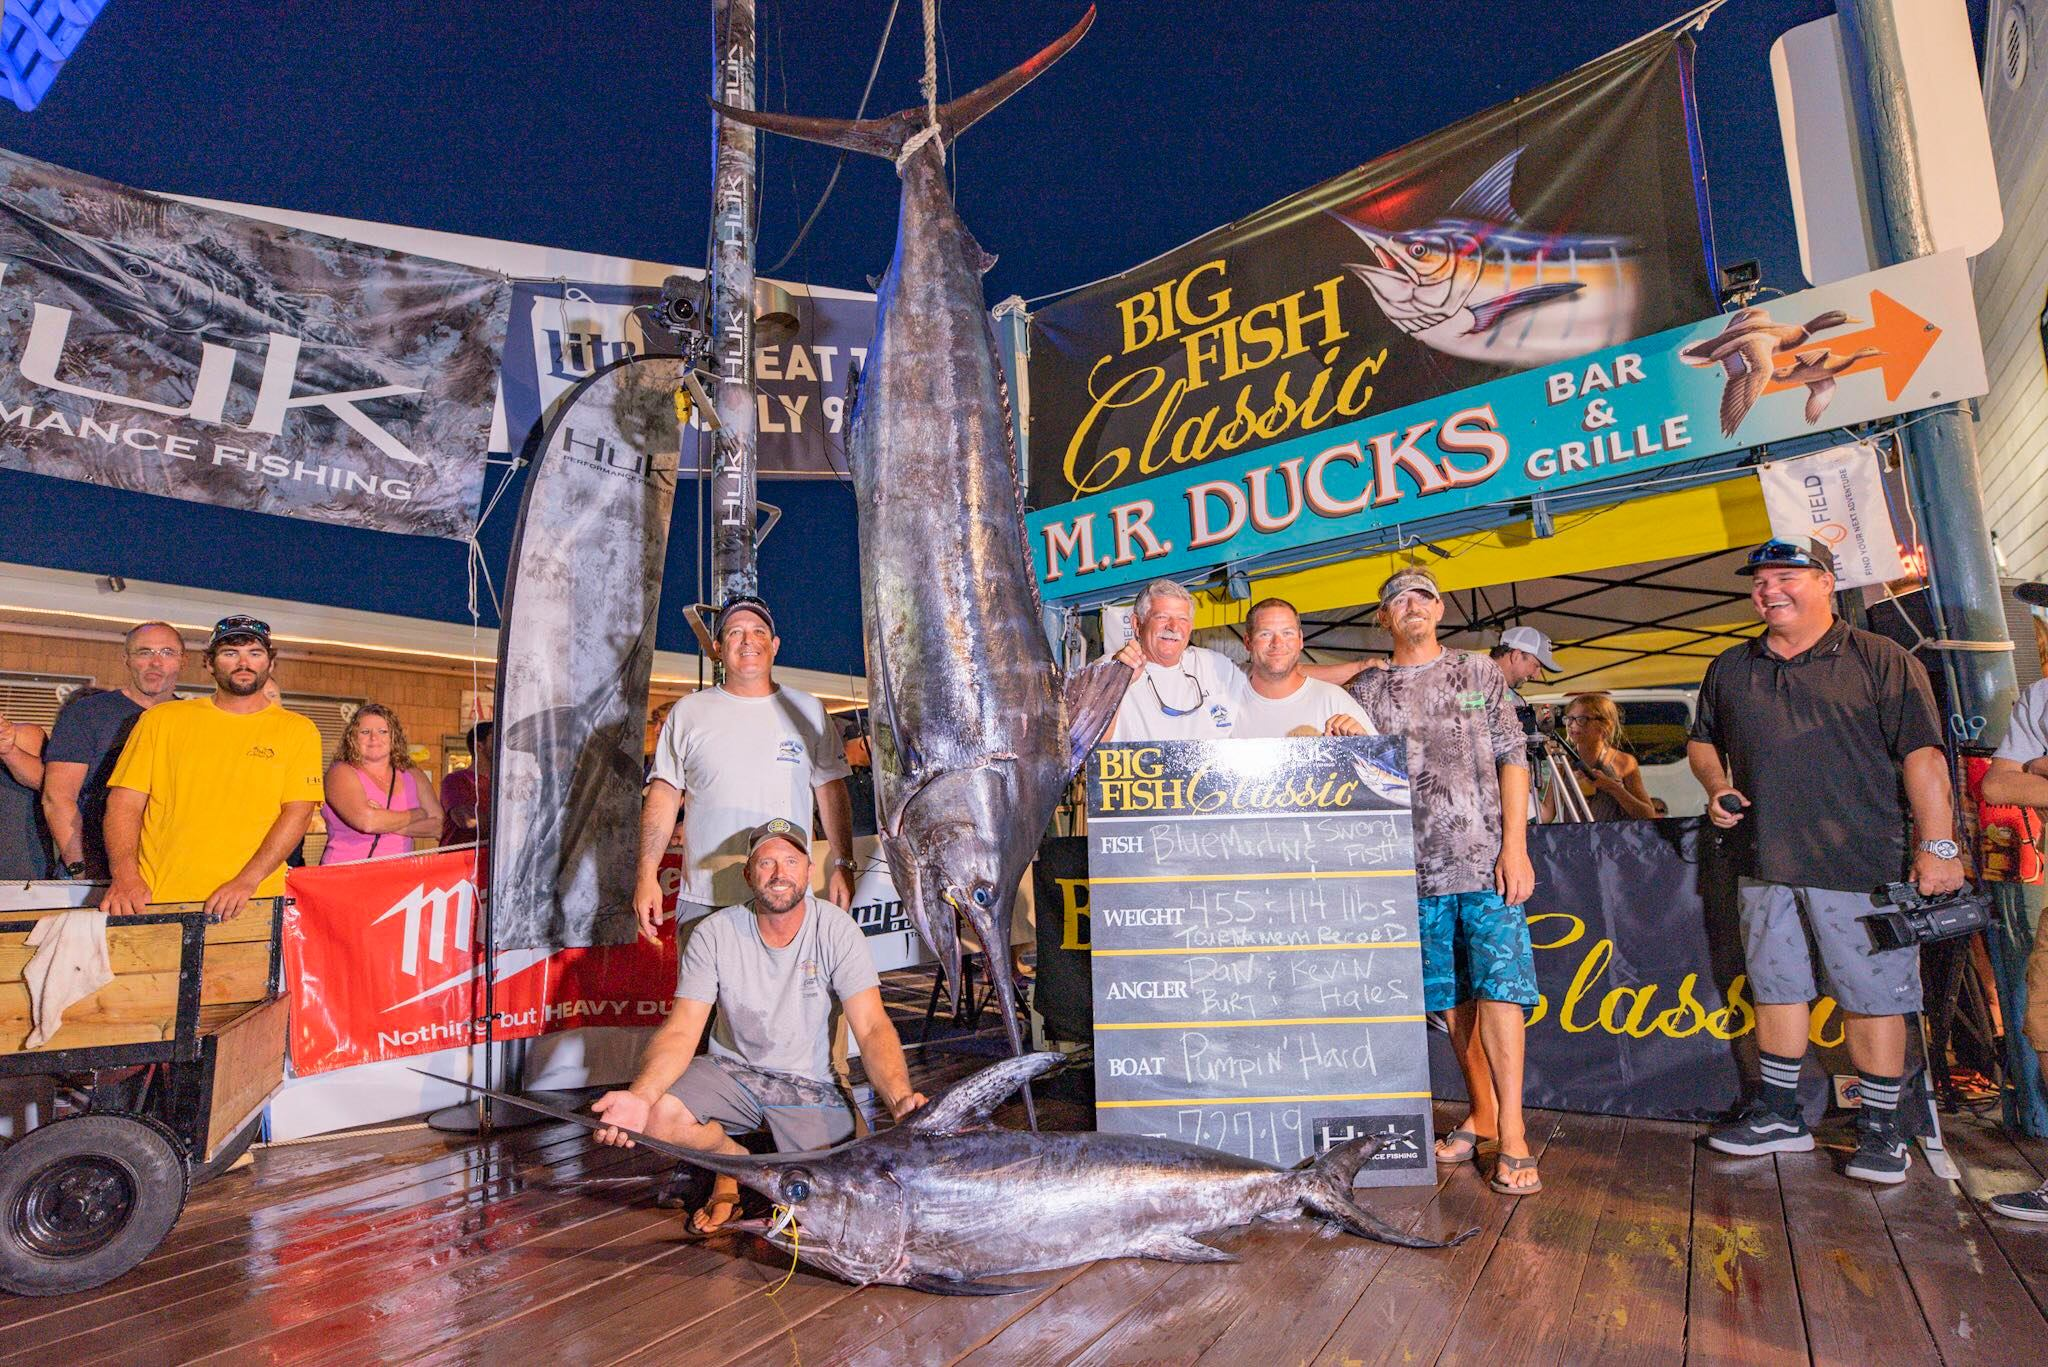 7th Annual HUK Big Fish Classic Has Incredible Turnout with Over 100 Boats and $900,000